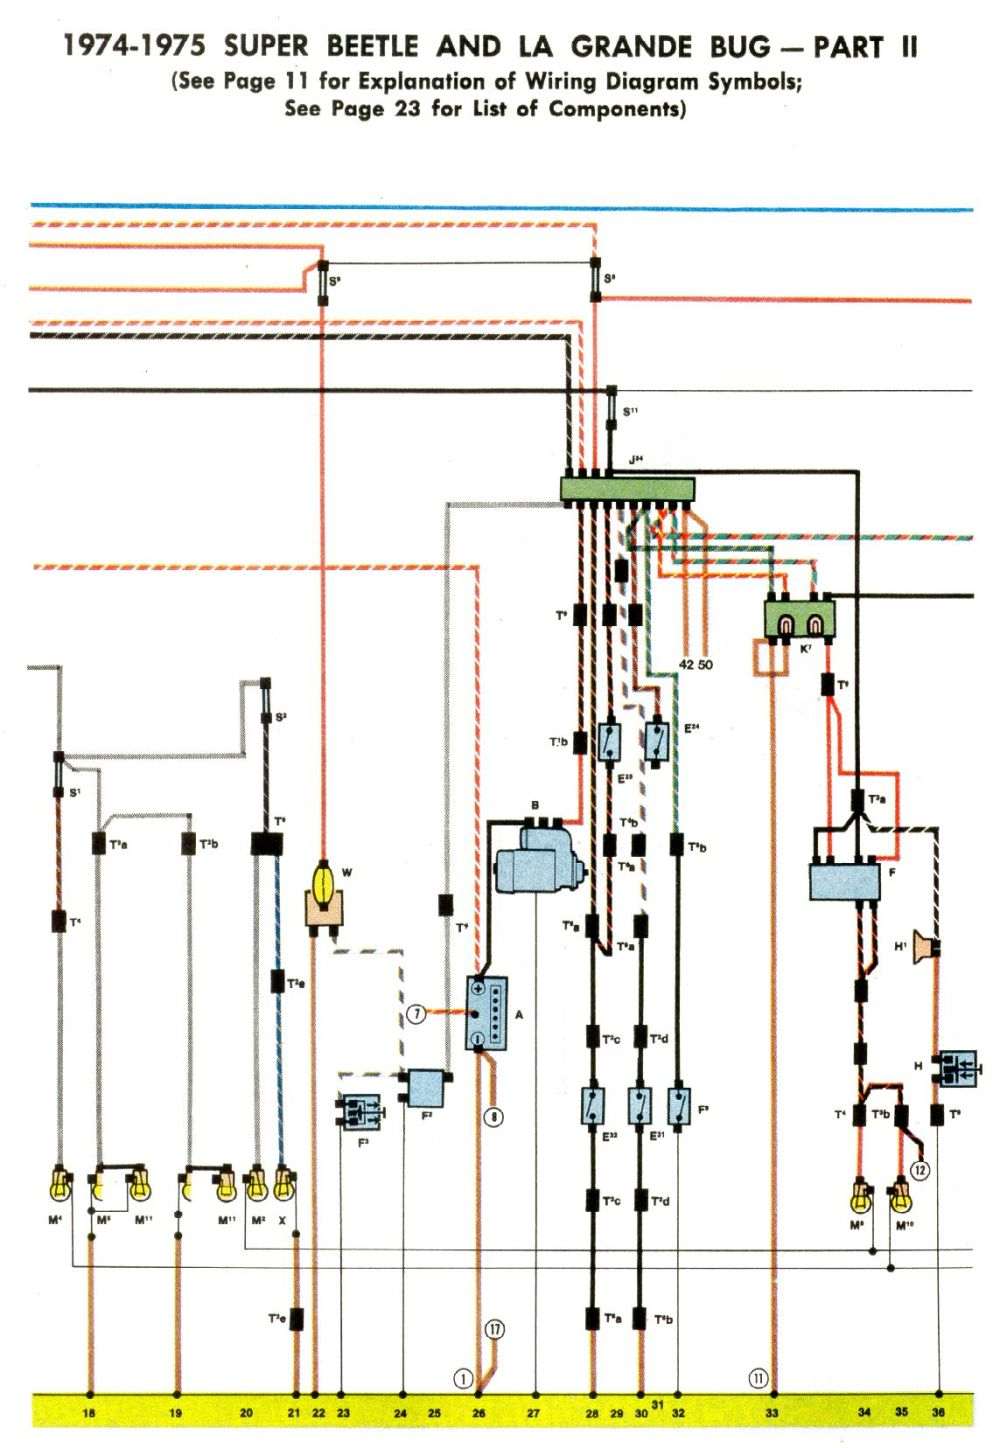 medium resolution of  in those diagrams just doesn t seem to match up quite right then click on the 1303 1974usa green dots in http www vintagebus com wiring index html